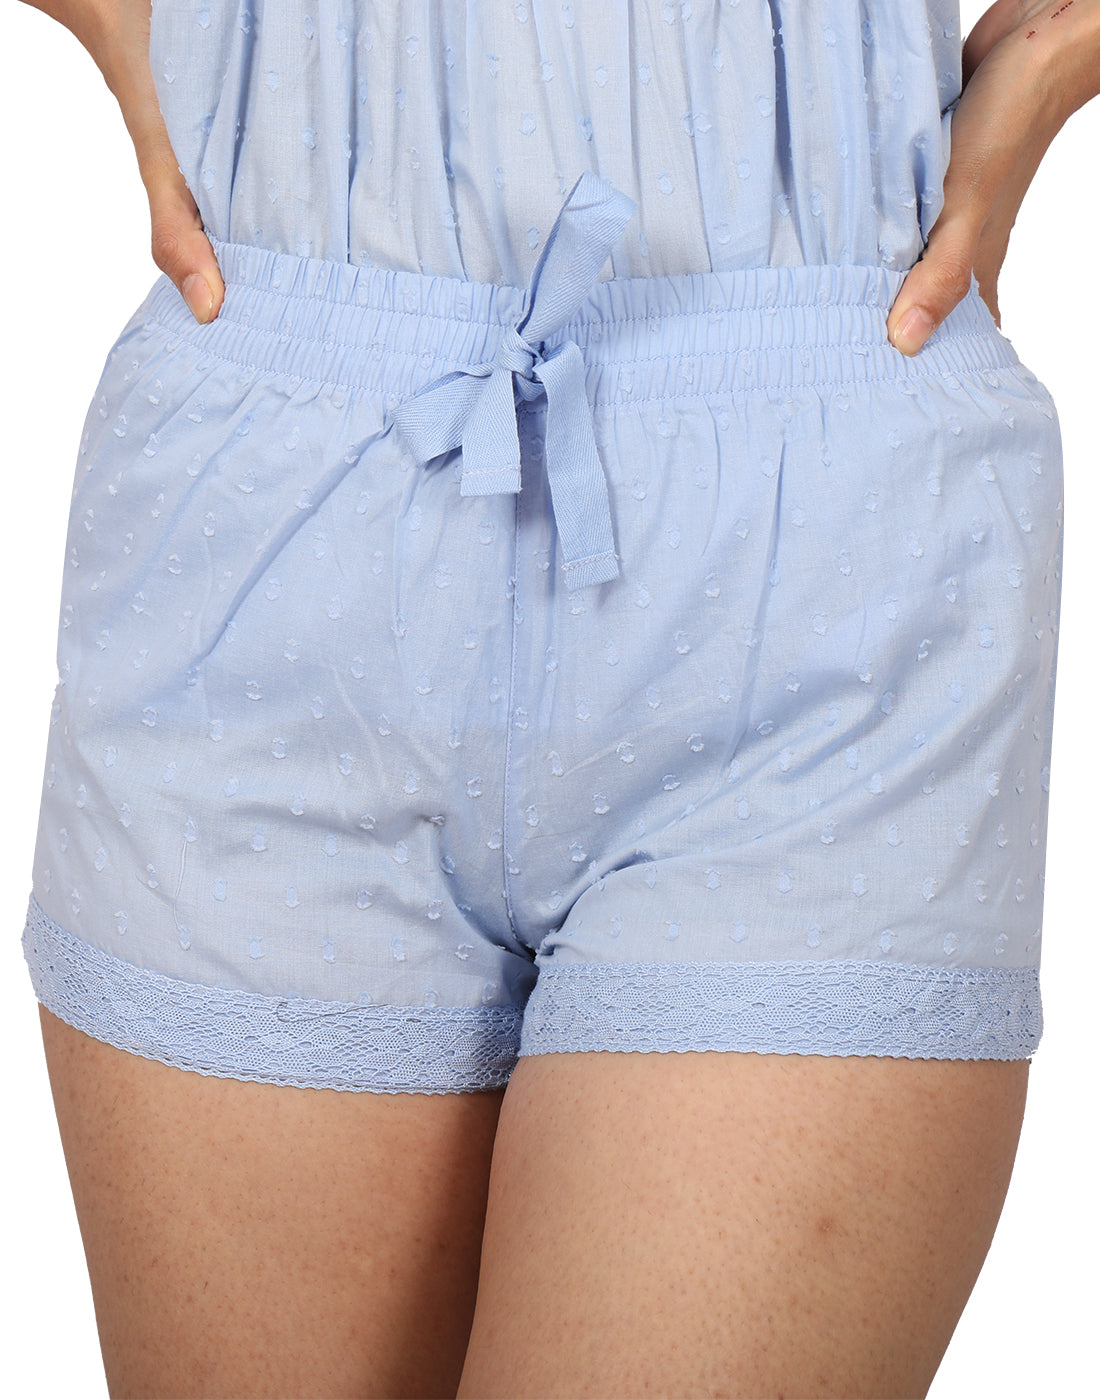 Powder Blue Shorts